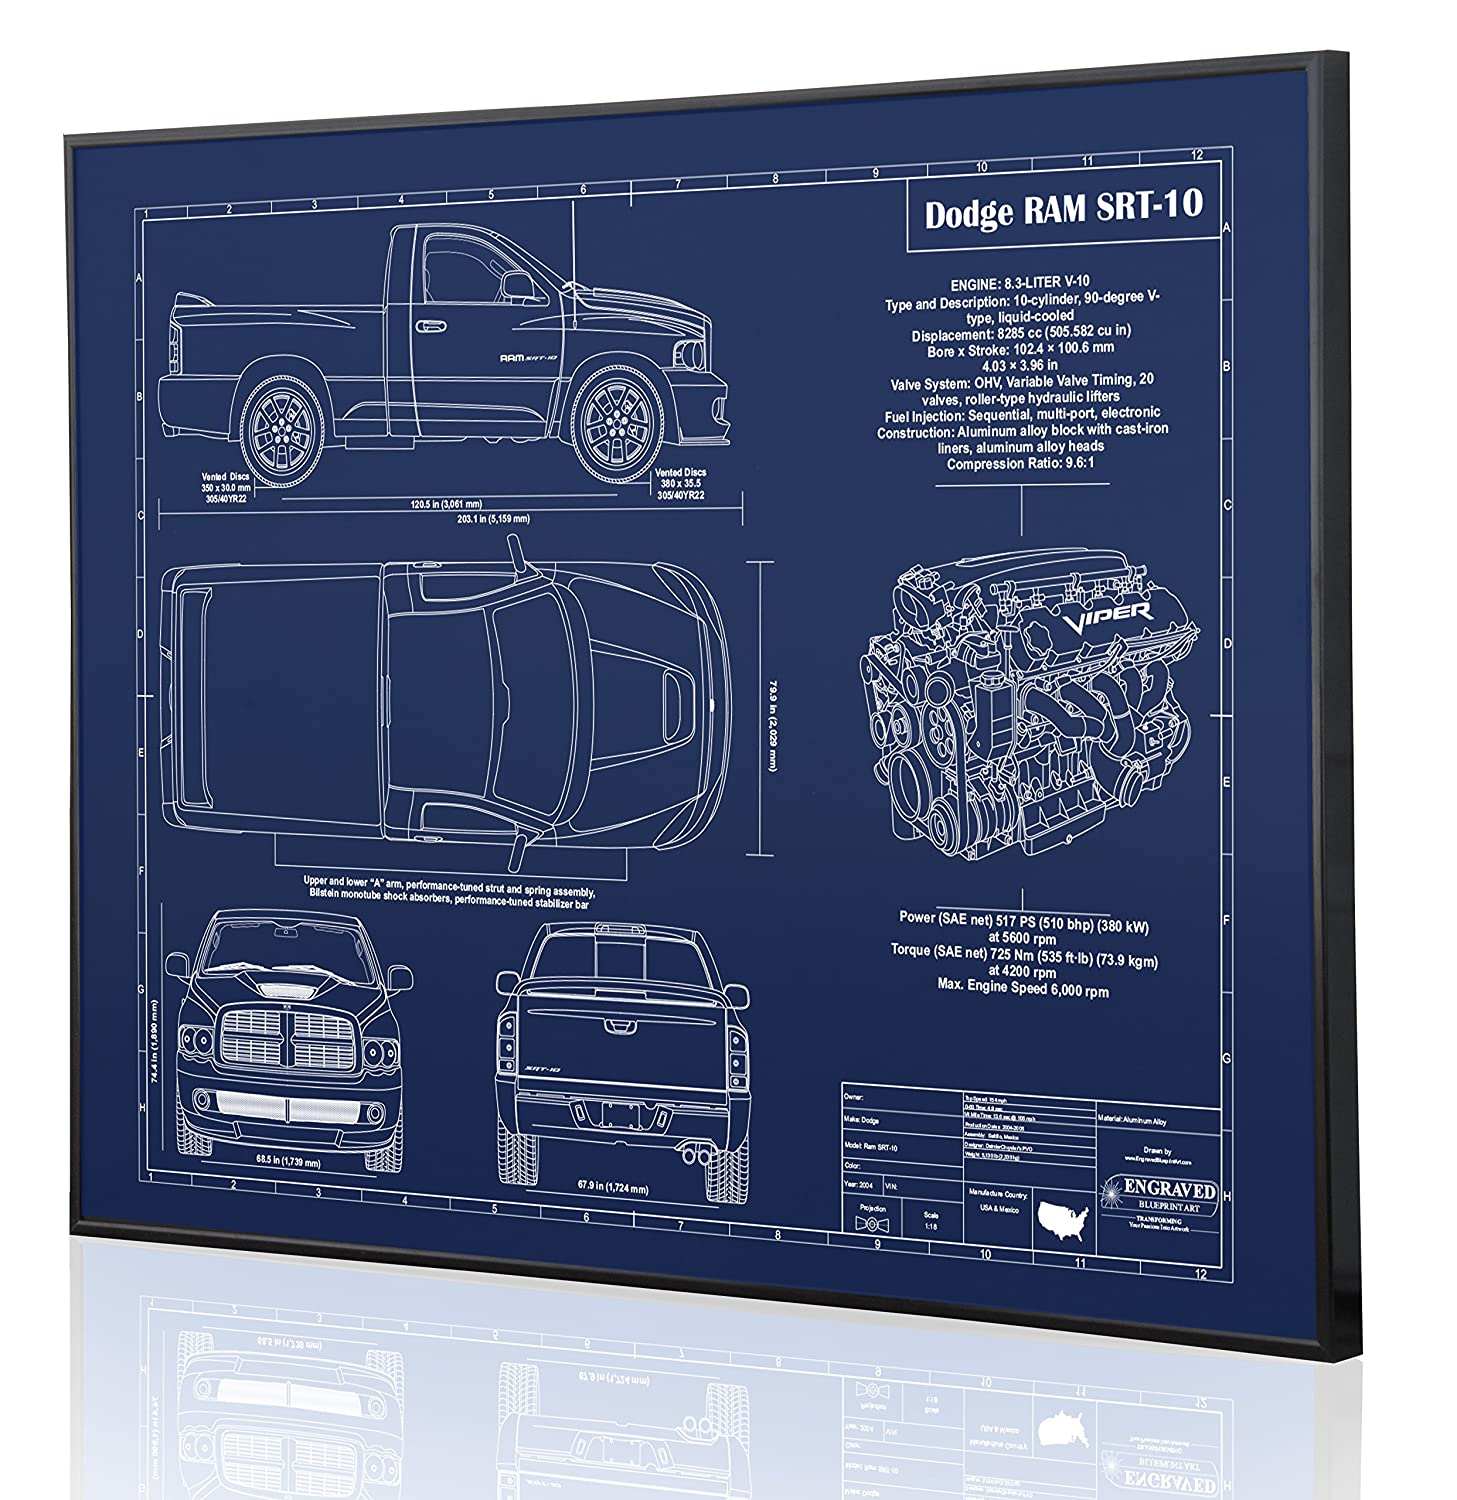 Amazon.com: Dodge RAM SRT-10 Blueprint Artwork-Laser Marked &  Personalized-The Perfect Dodge Gifts: Handmade